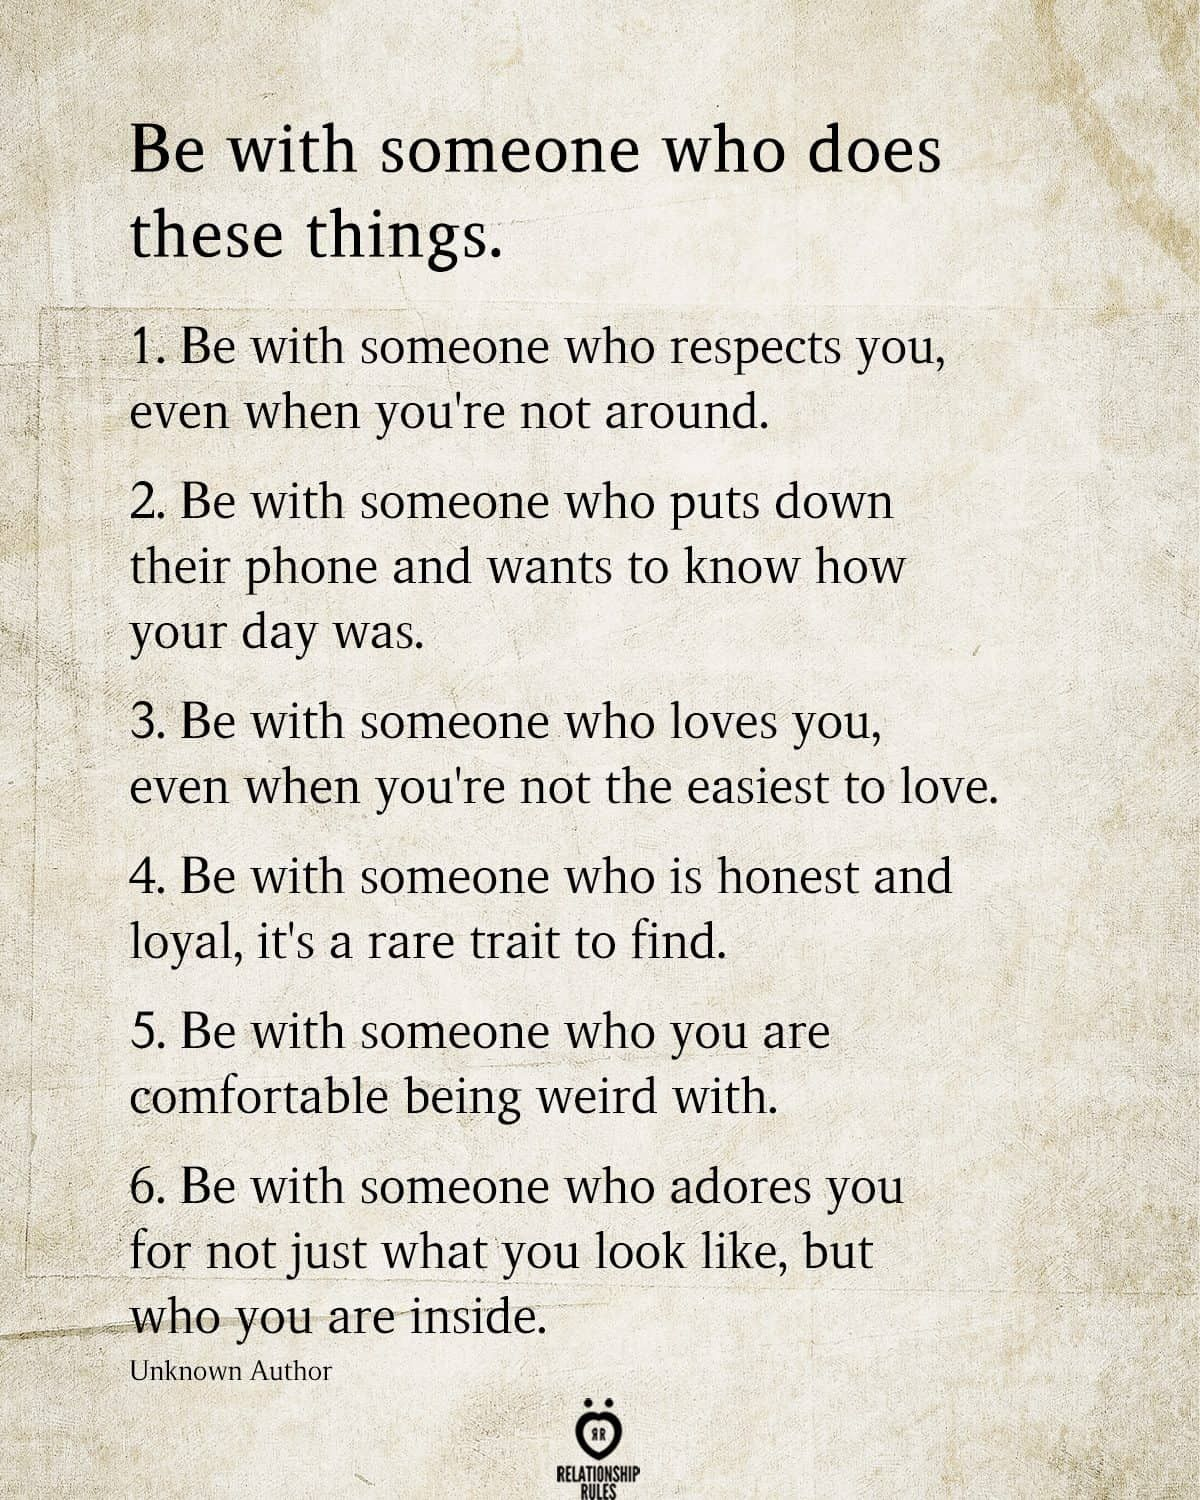 Be With Someone Who Does These Things Relationship Advice Quotes Advice Quotes True Quotes